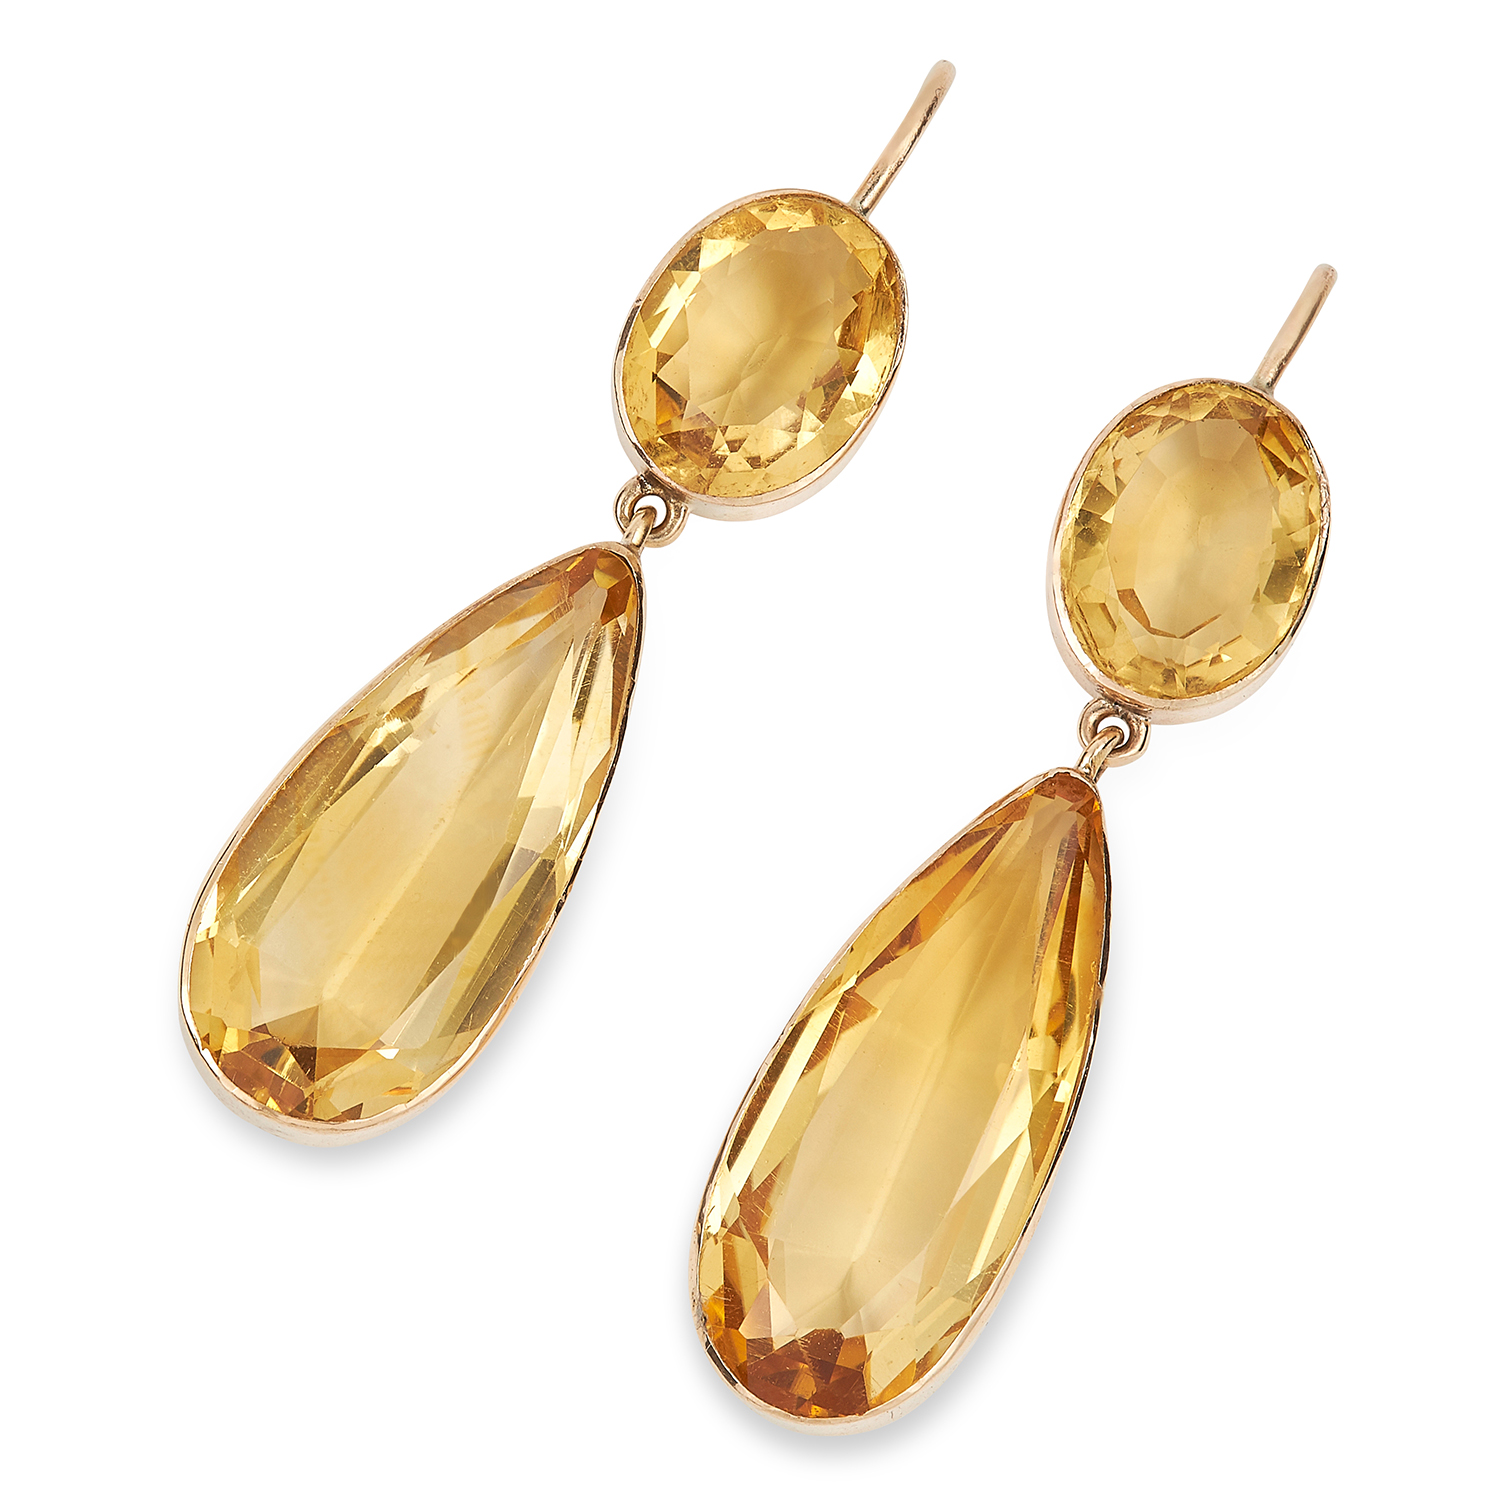 Los 45 - ANTIQUE CITRINE EARRINGS set with pear and oval cut citrines, 4.0cm, 5.8g.